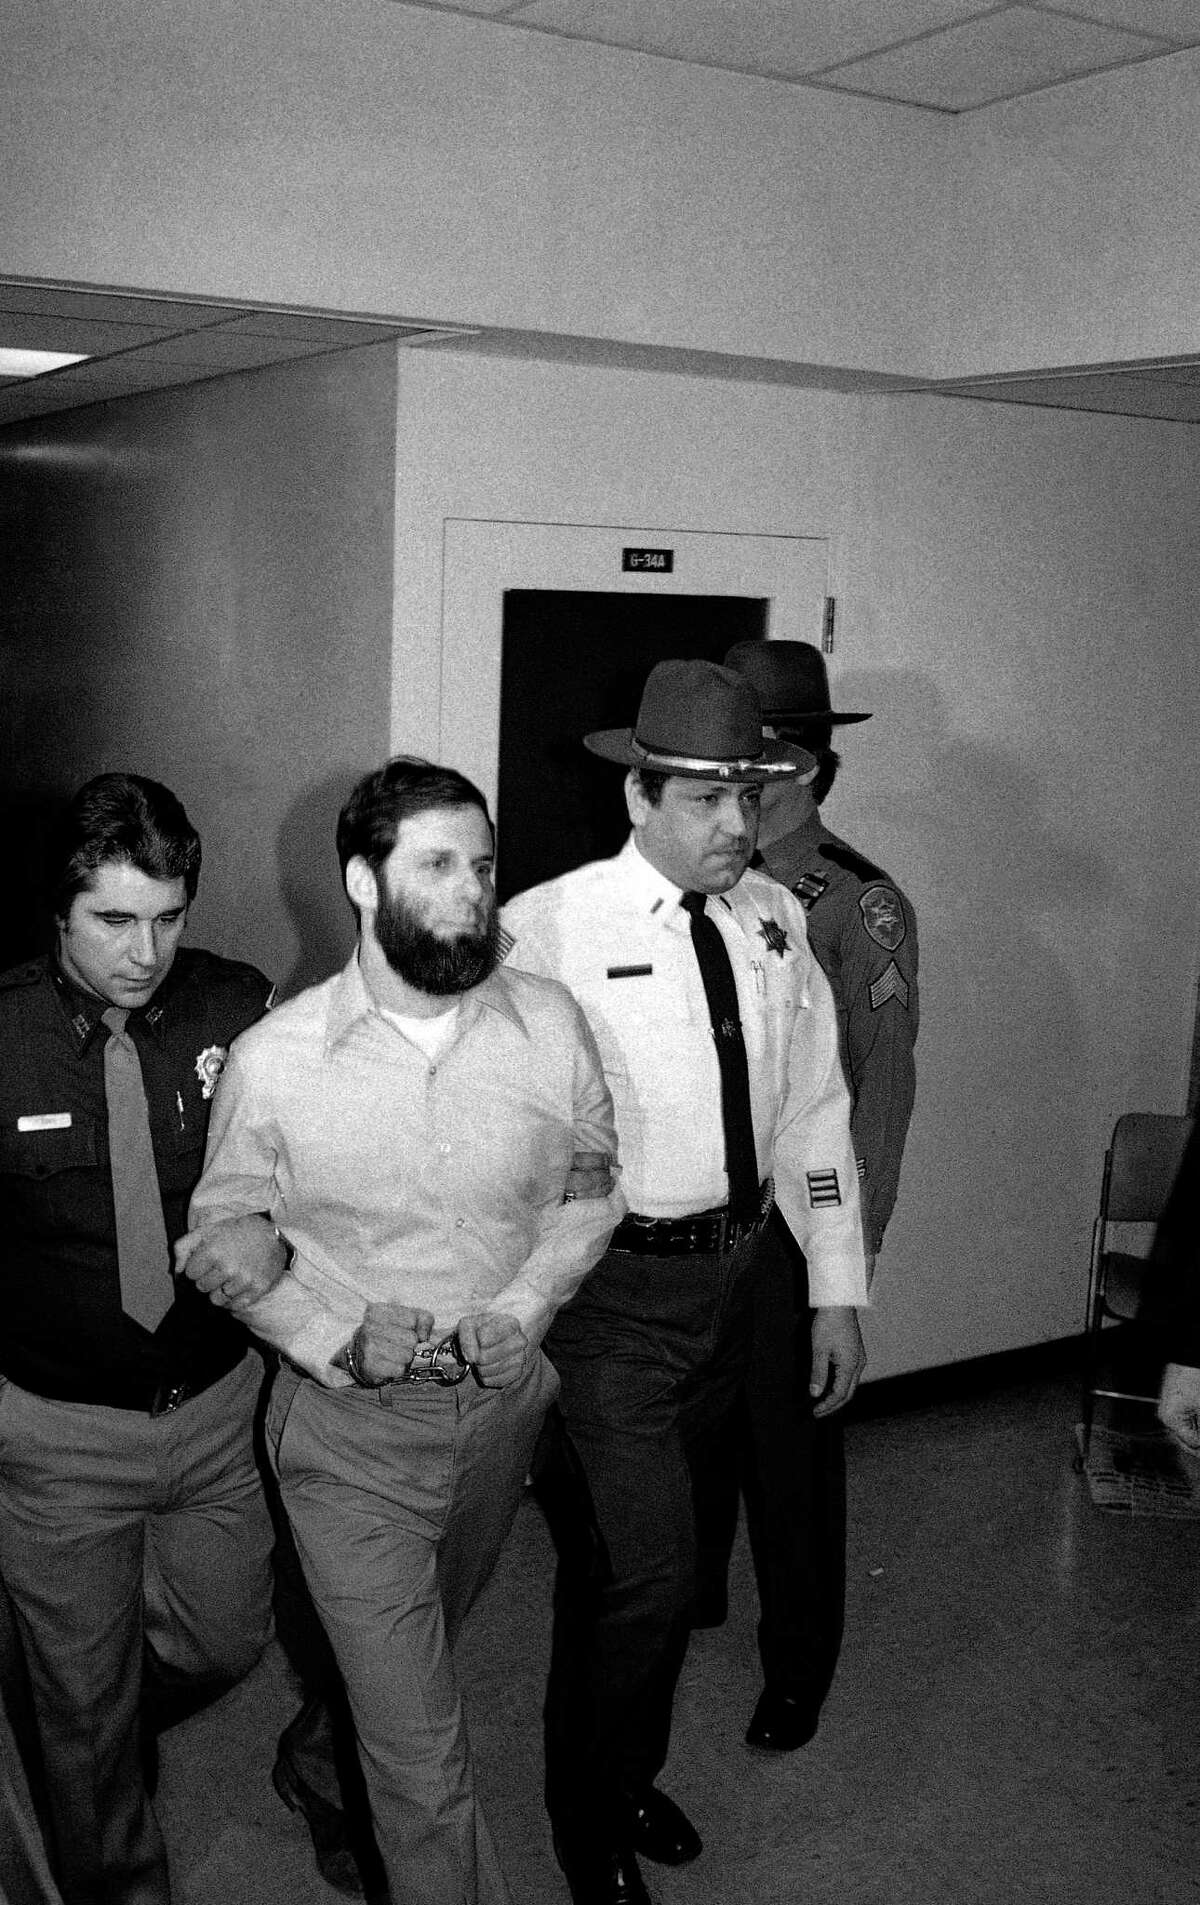 David Gilbert, the father of S.F. District Attorney Chesa Boudin, was arrested in 1981 for his role in an armored car robbery that left three people dead.